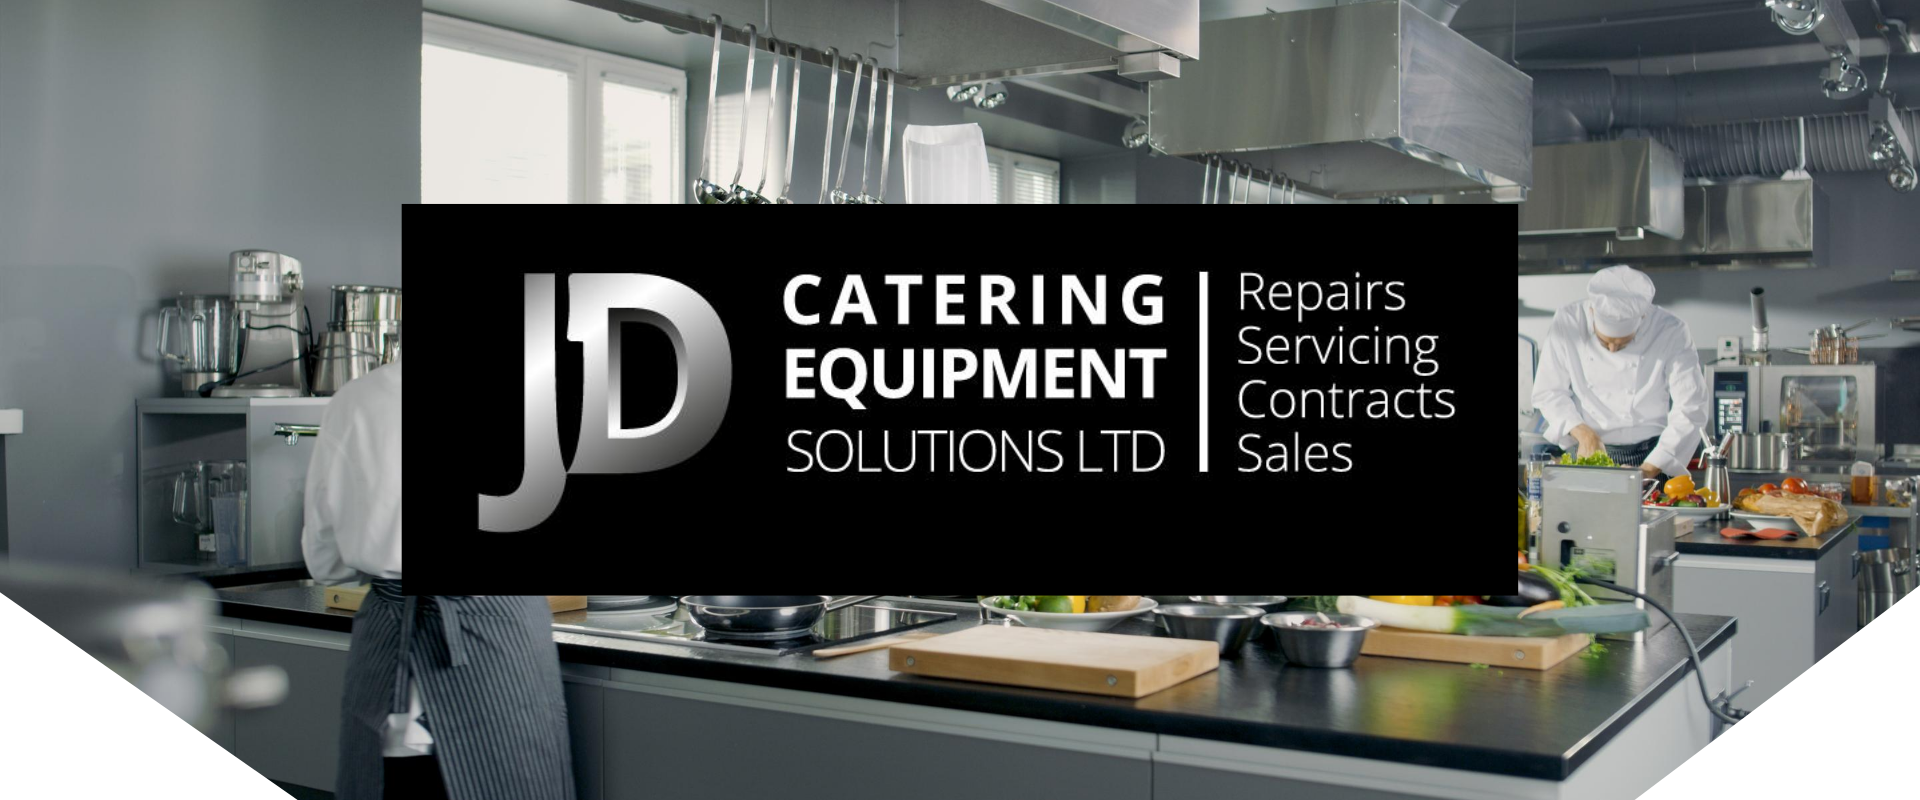 Catering Equipment For Commercial Kitchens